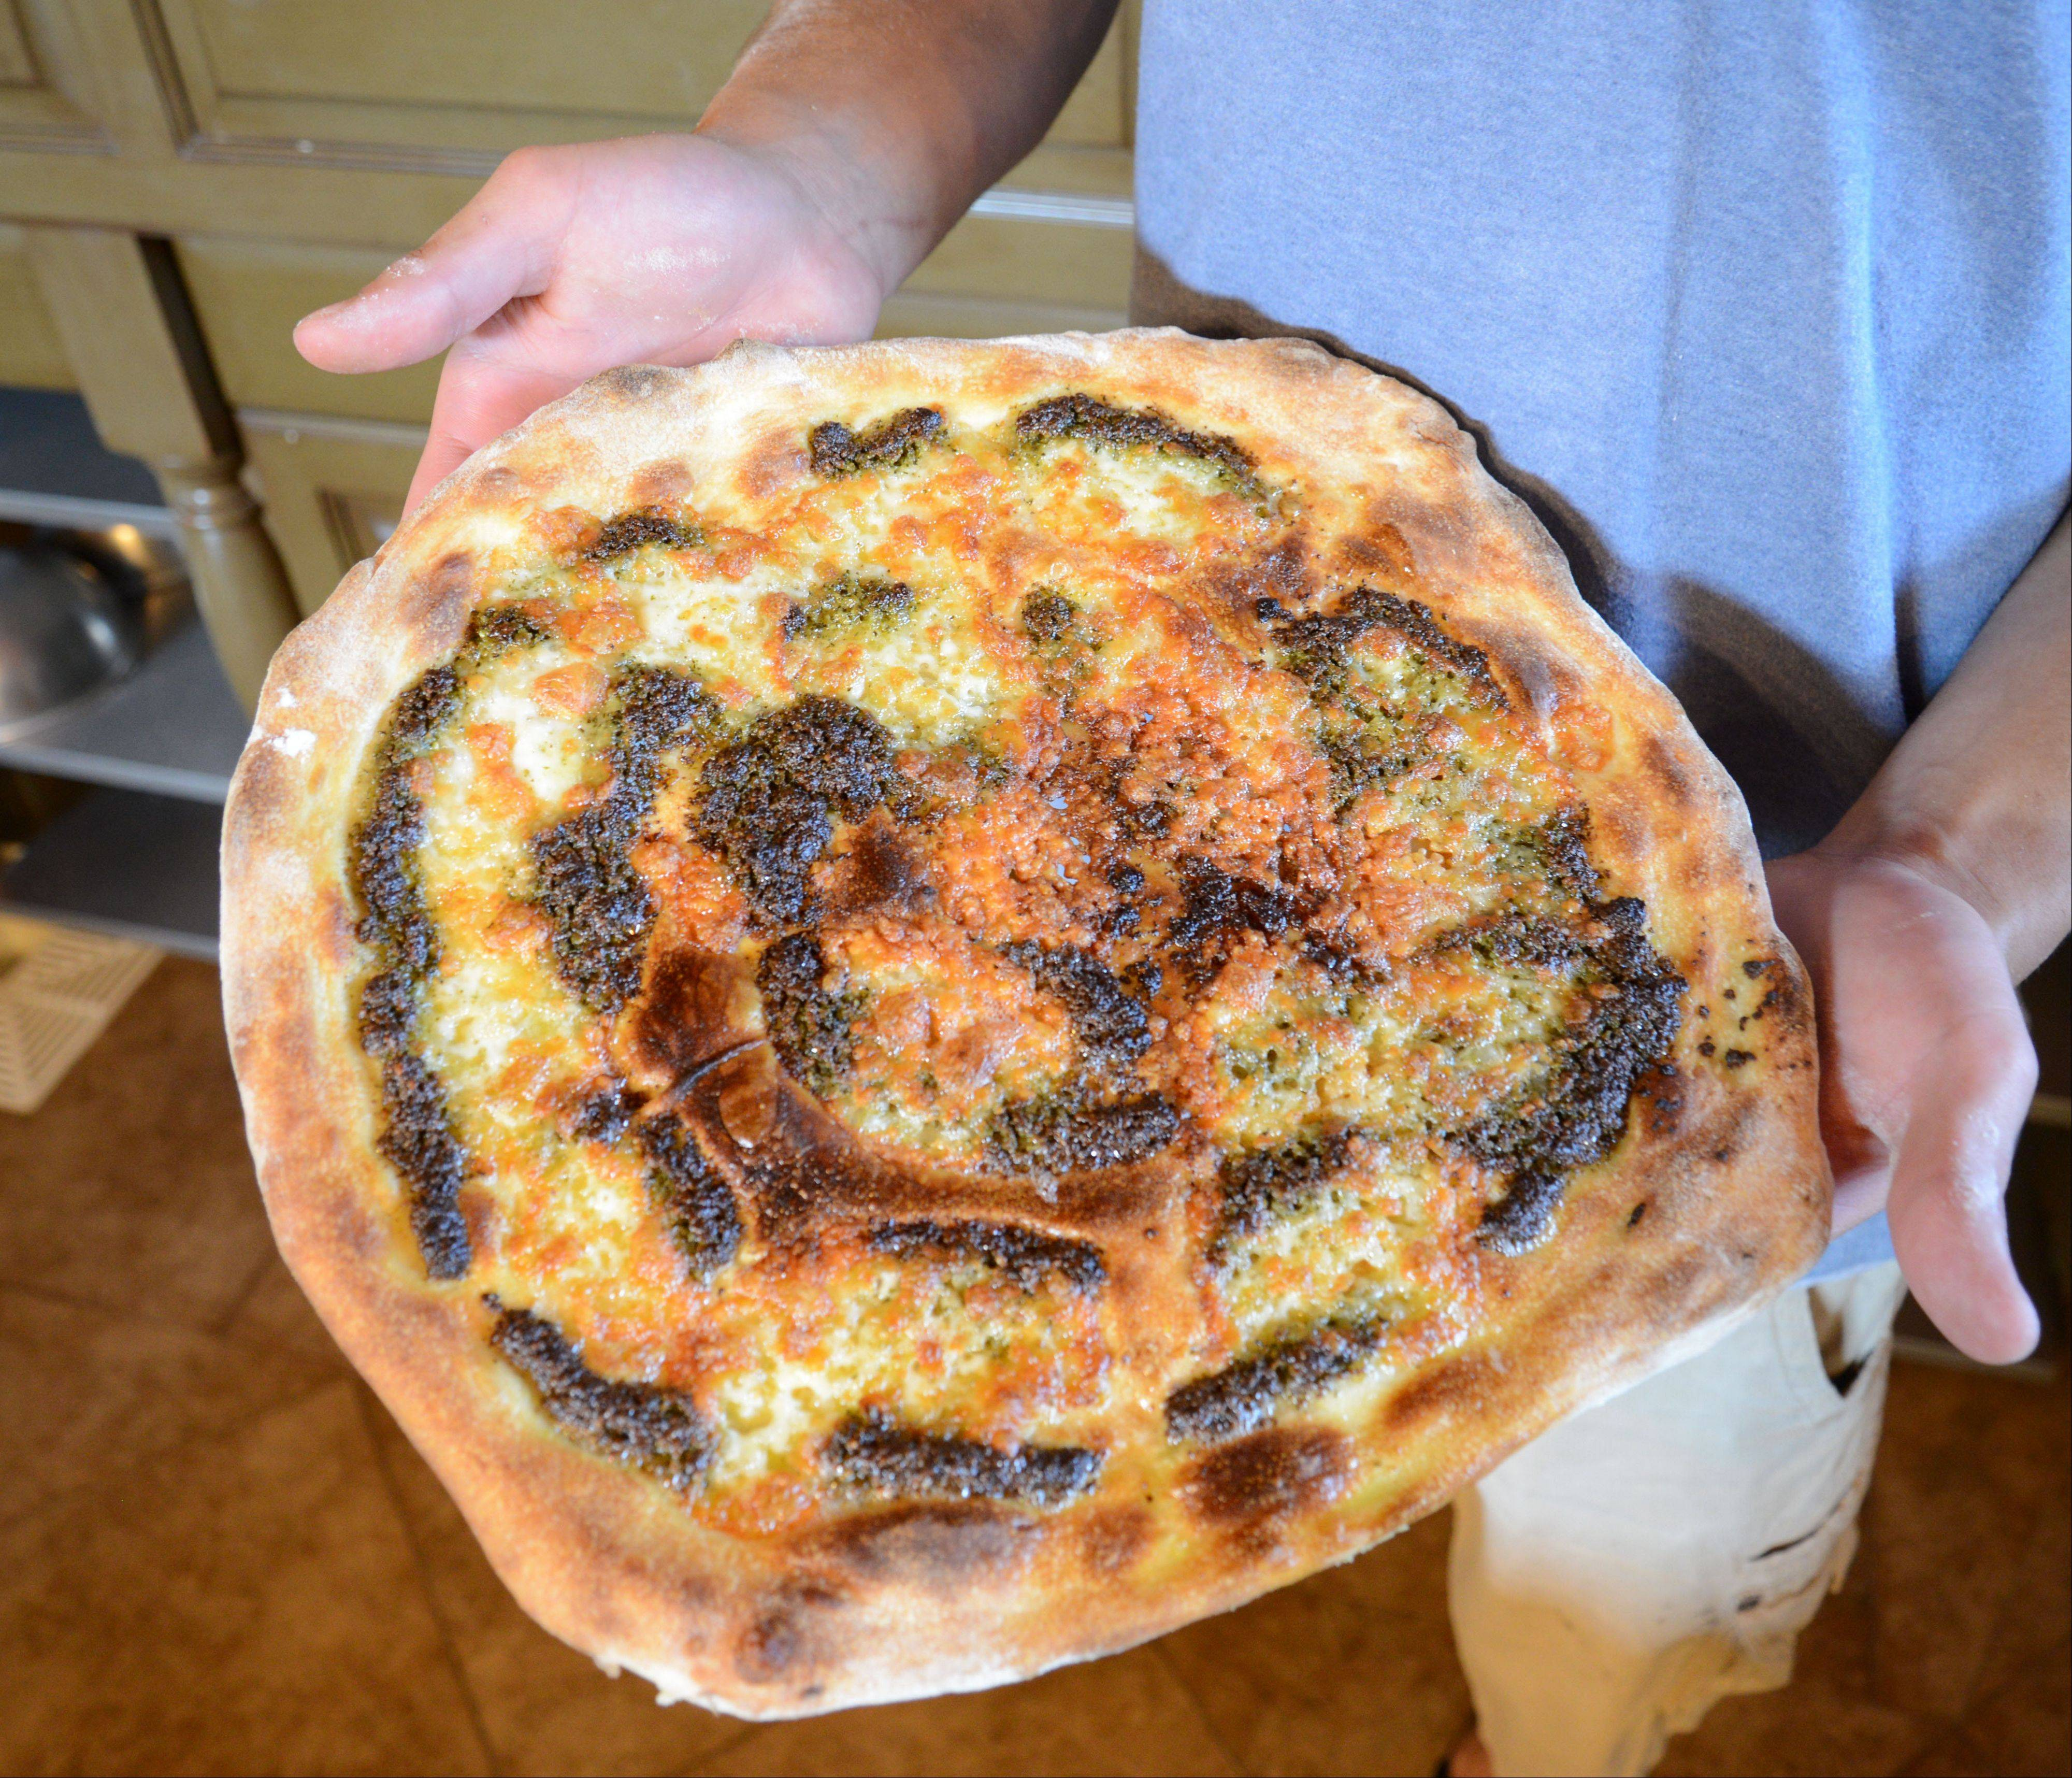 Chef Alex Ciciora's pesto pizza.